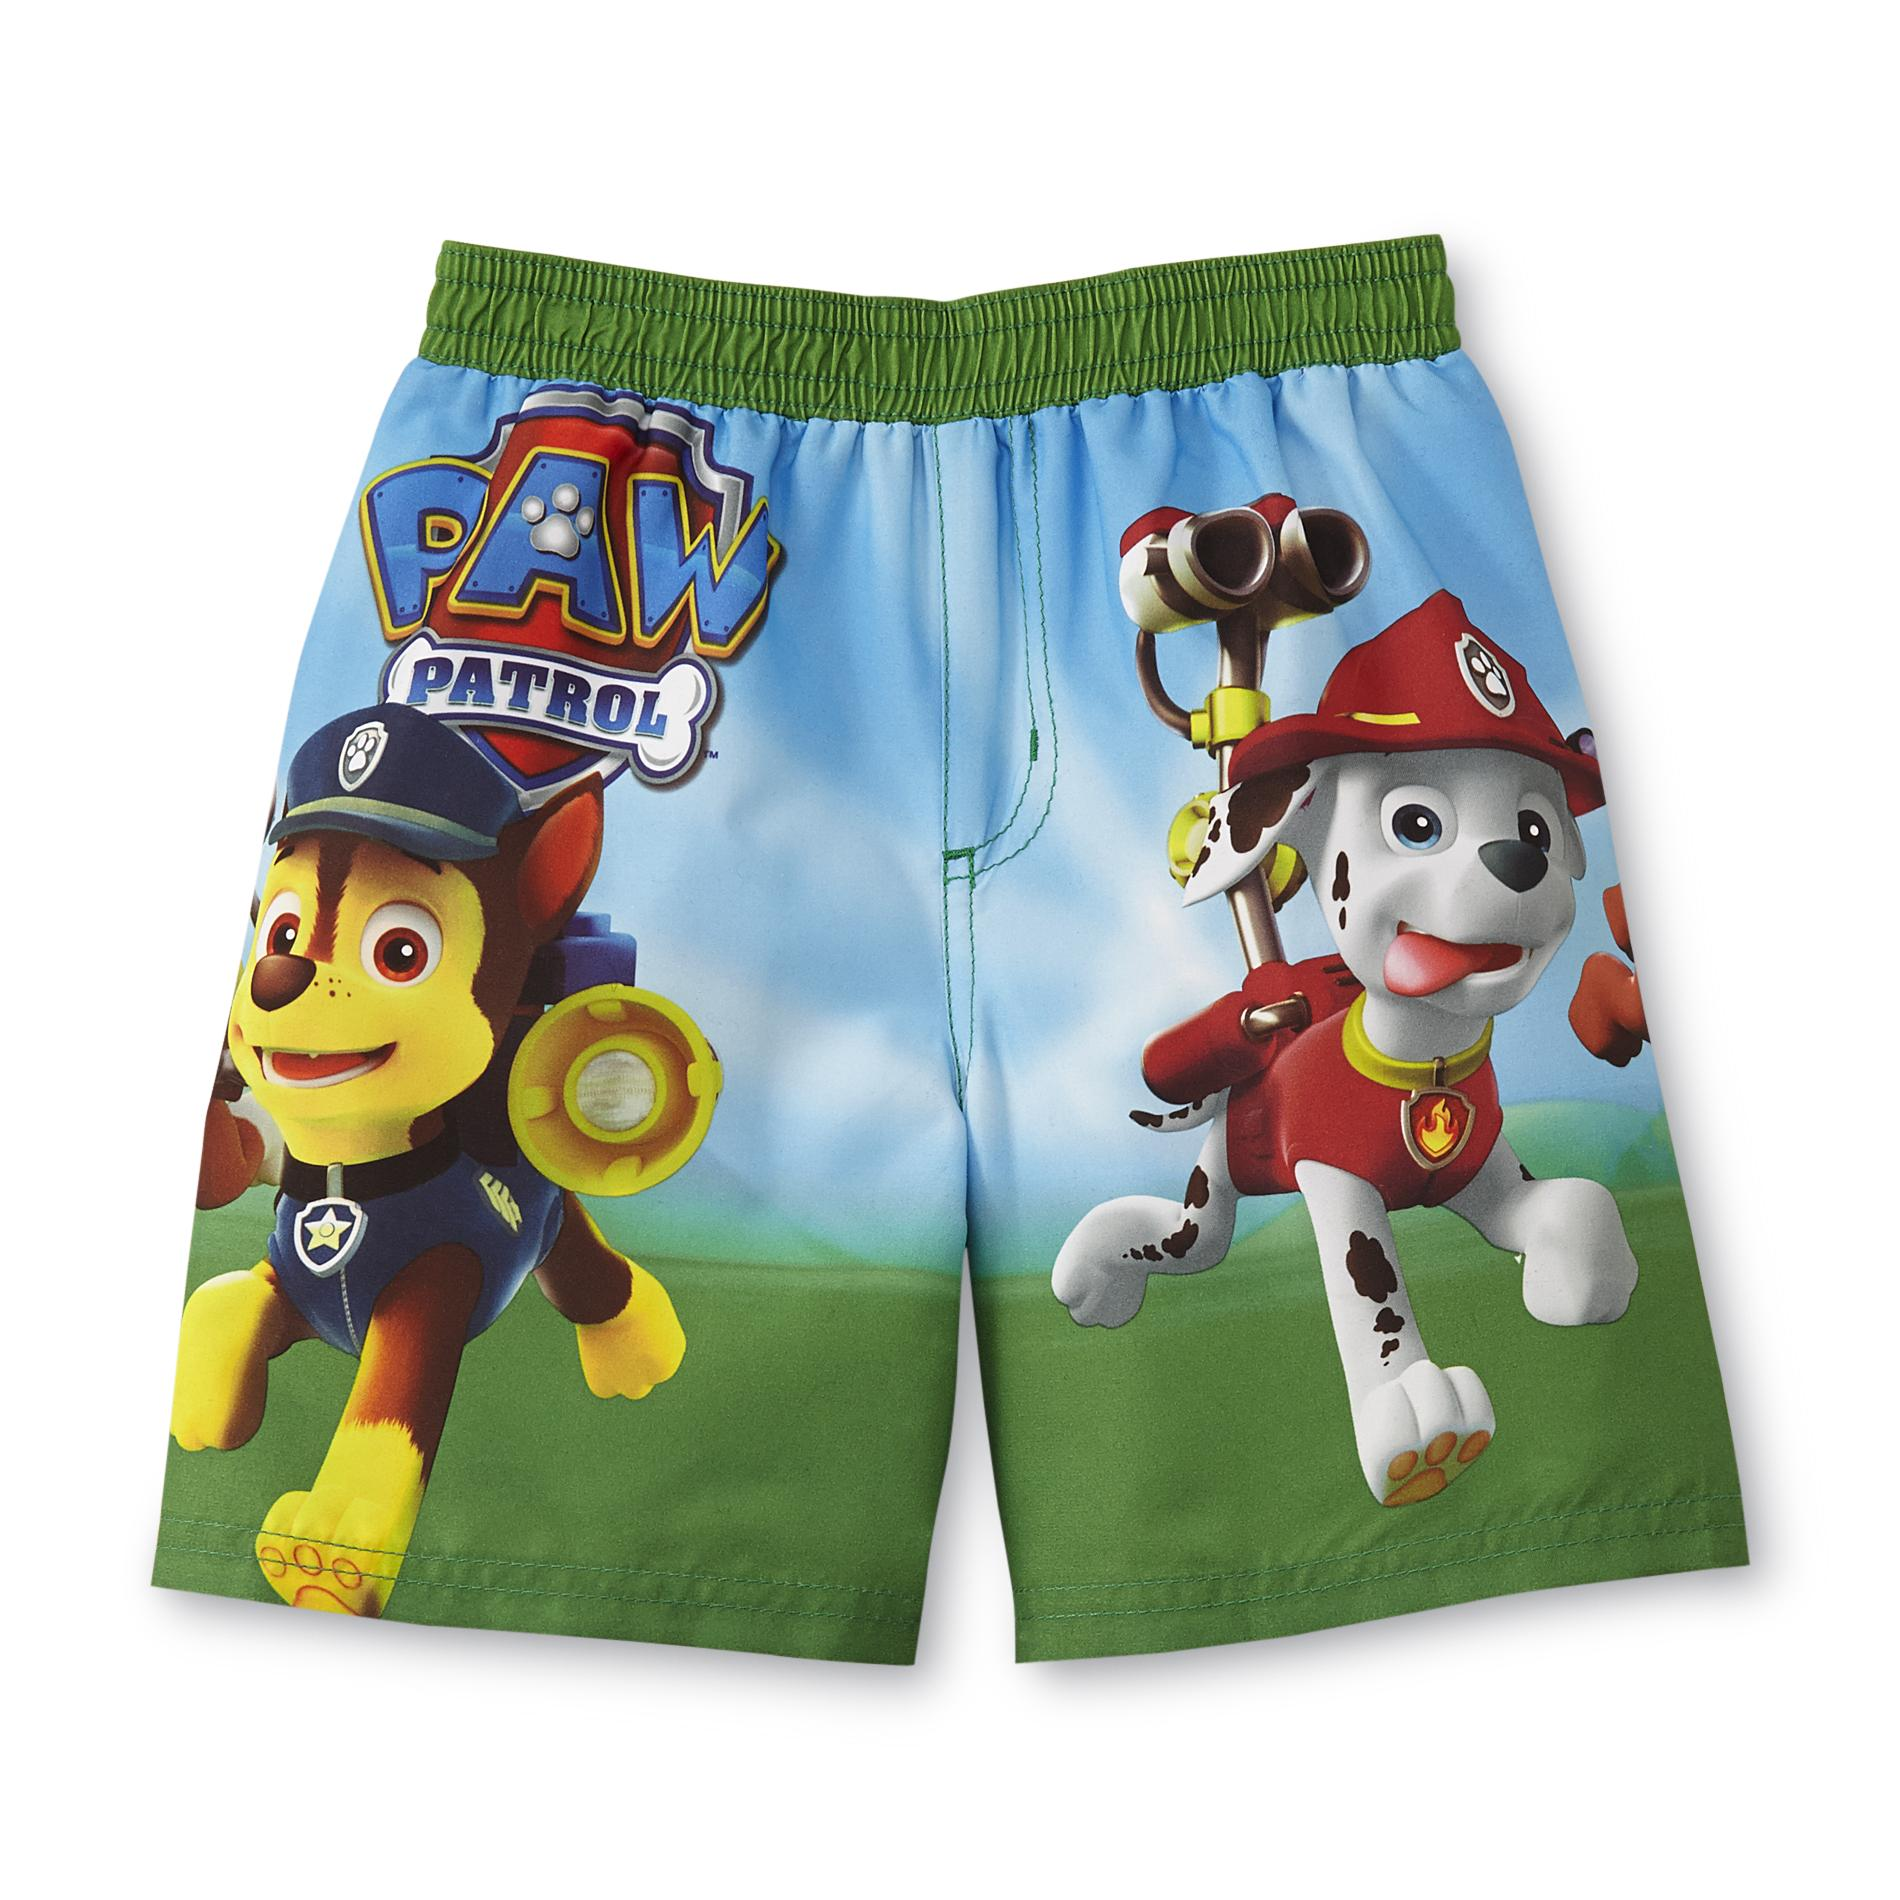 eea0624aa0e83 Nickelodeon PAW Patrol Toddler Boy's Swim Shorts